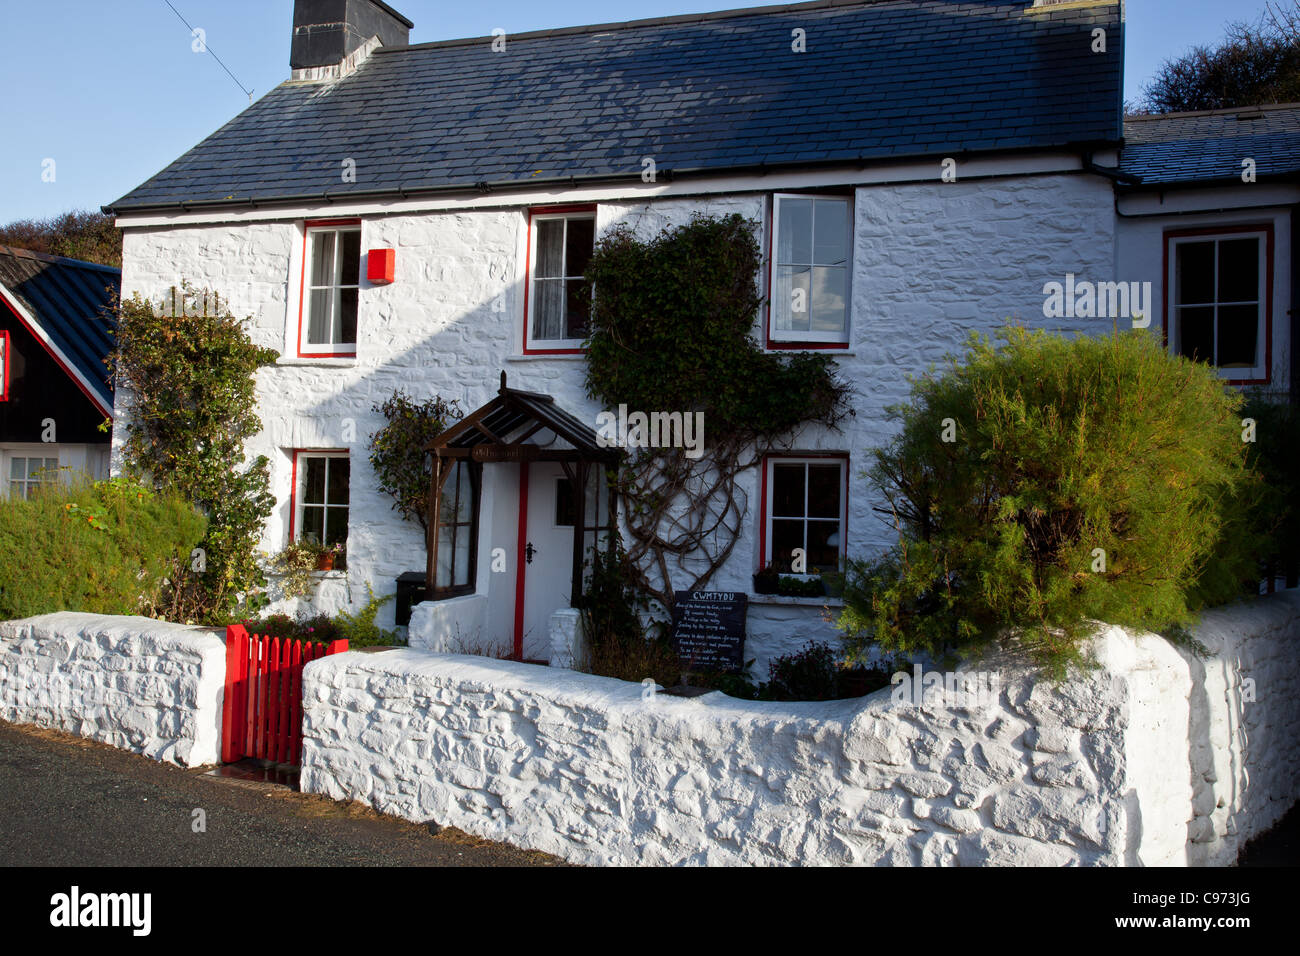 Cottage at Cwmtydu, on the Ceredigion Coast, near New Quay, Wales - Stock Image